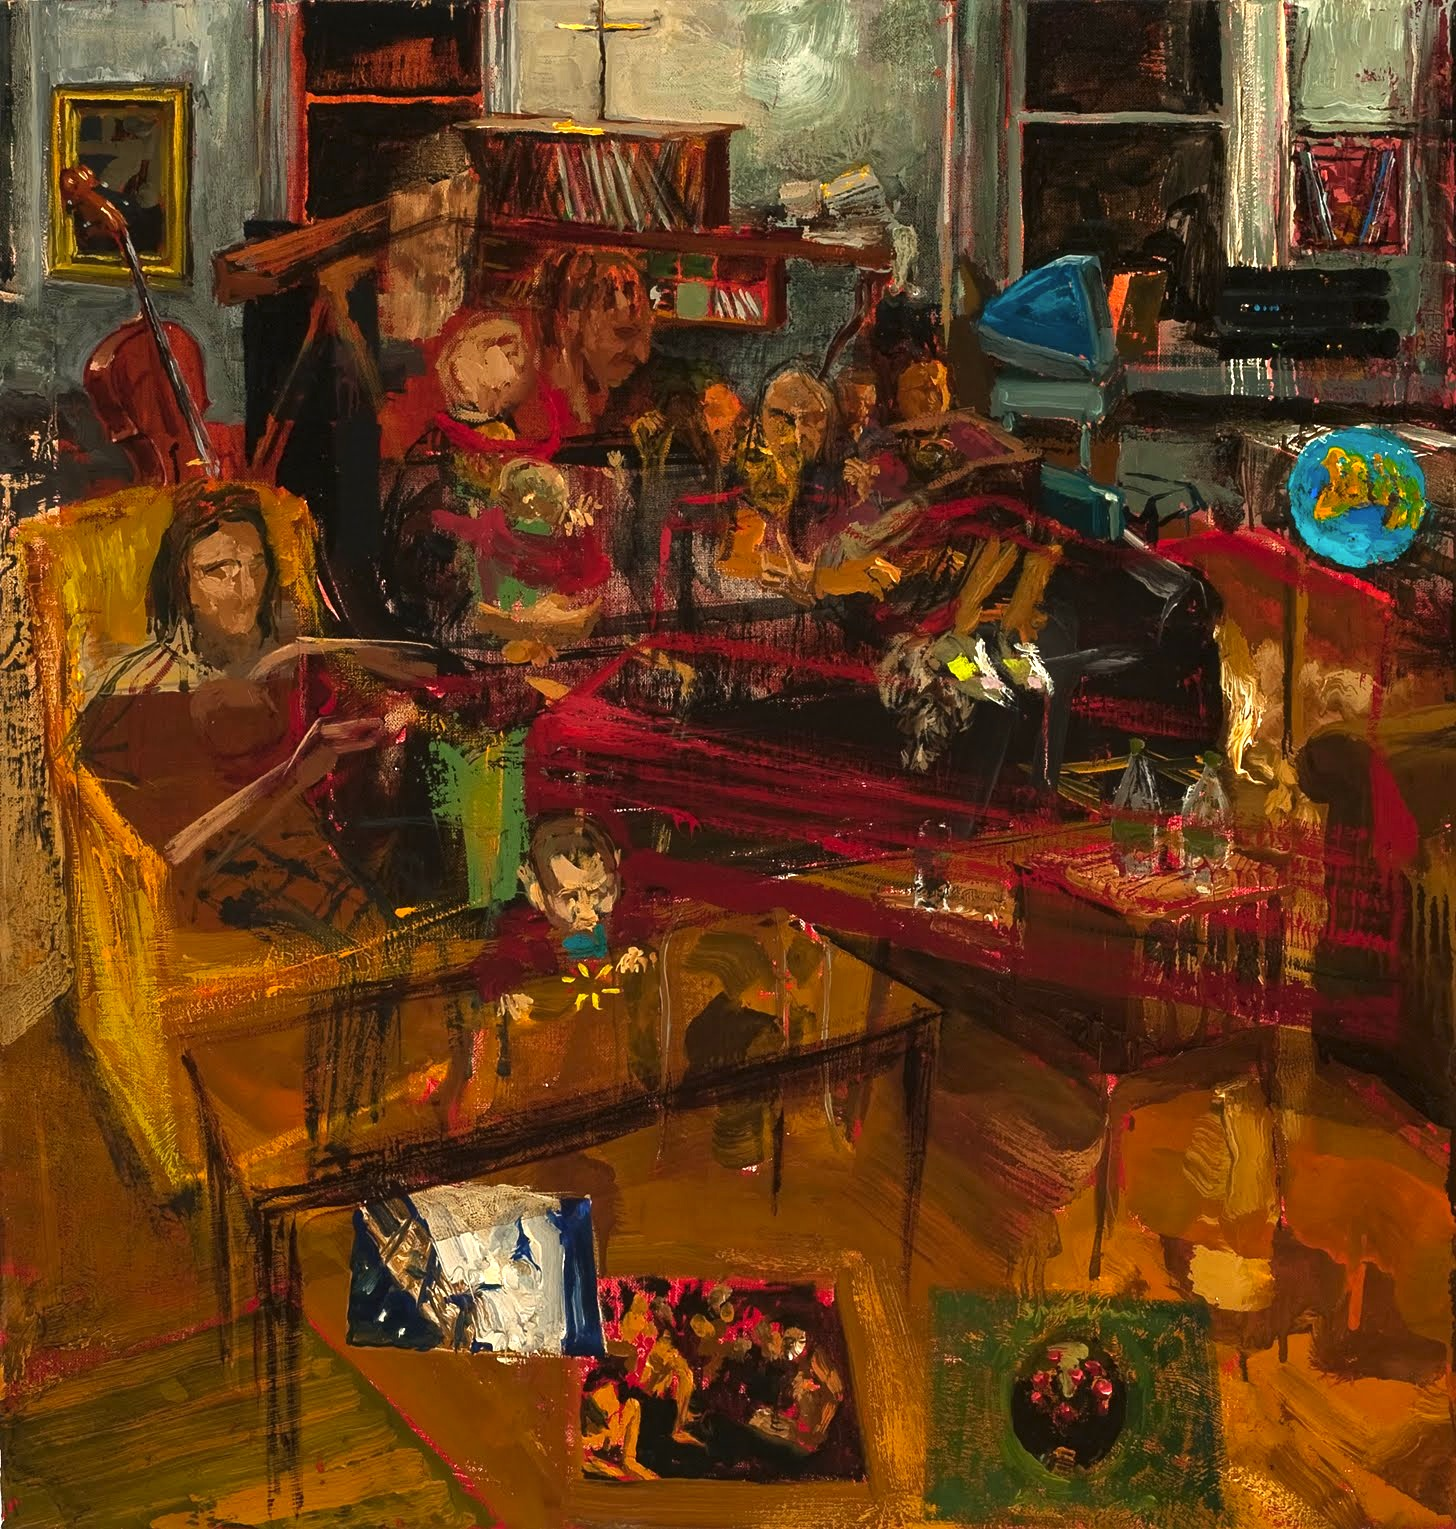 Gideon Bok, Jack Tarmy and the Electric Landlady, 23 x 22 inches, 2007-2010, oil